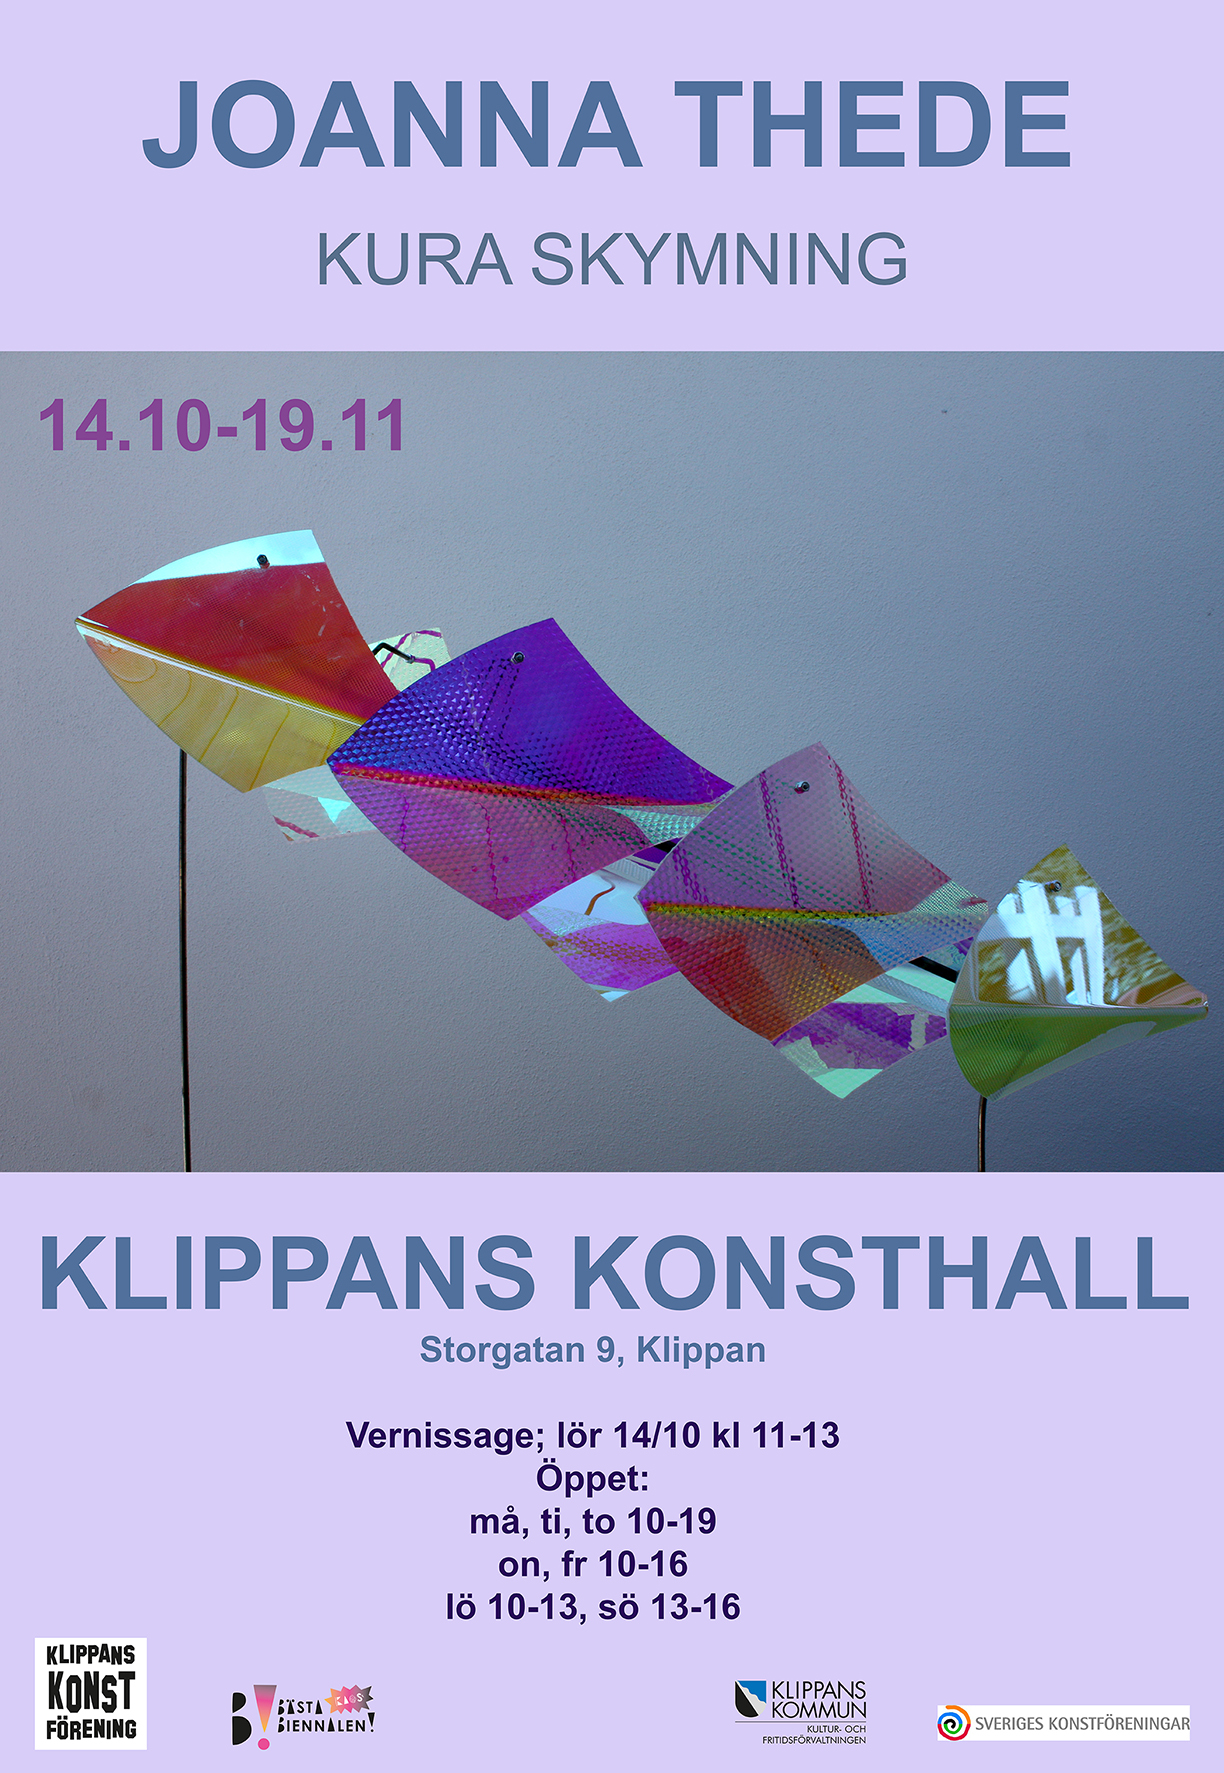 Joanna Thede opening Klippans konsthall 2017